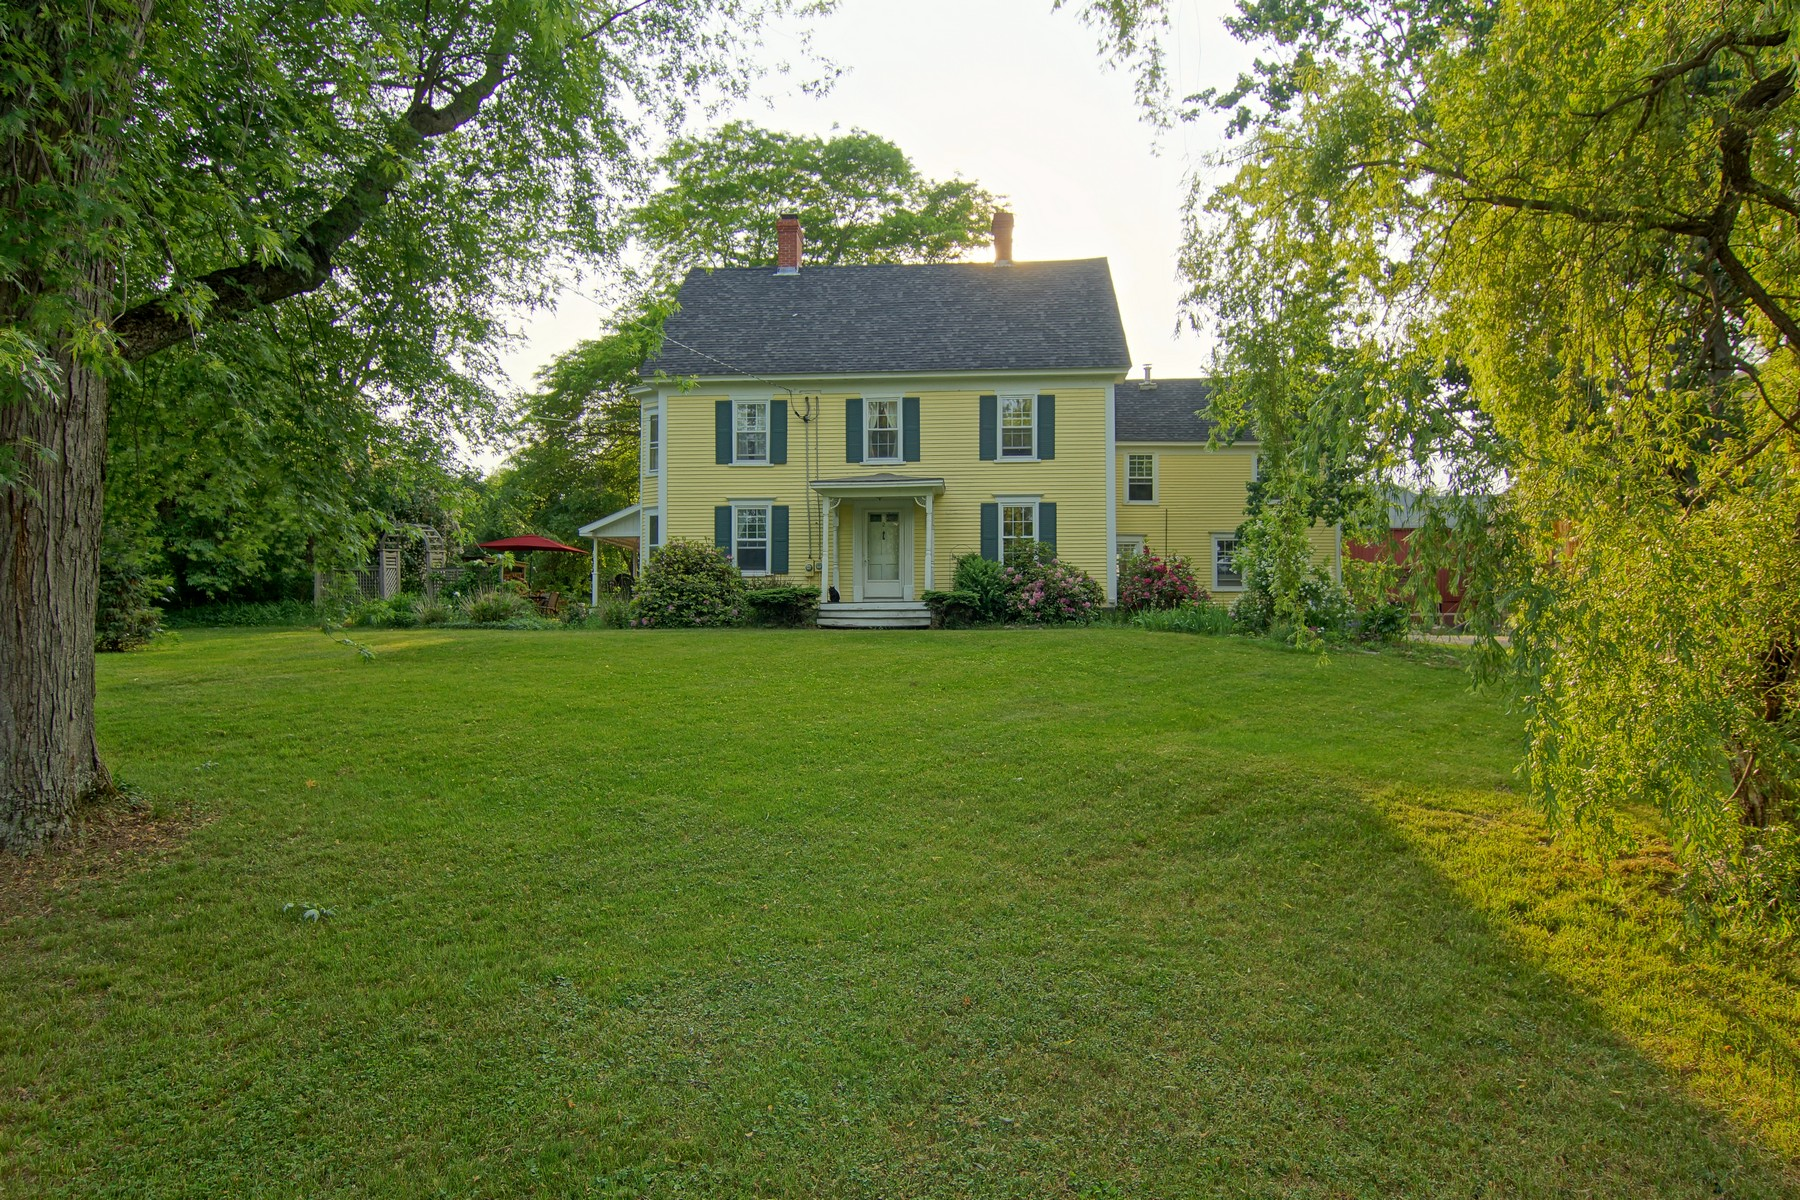 Single Family Home for Sale at Country Living at Wingate Farm 2 Emery Lane Stratham, New Hampshire, 03885 United States